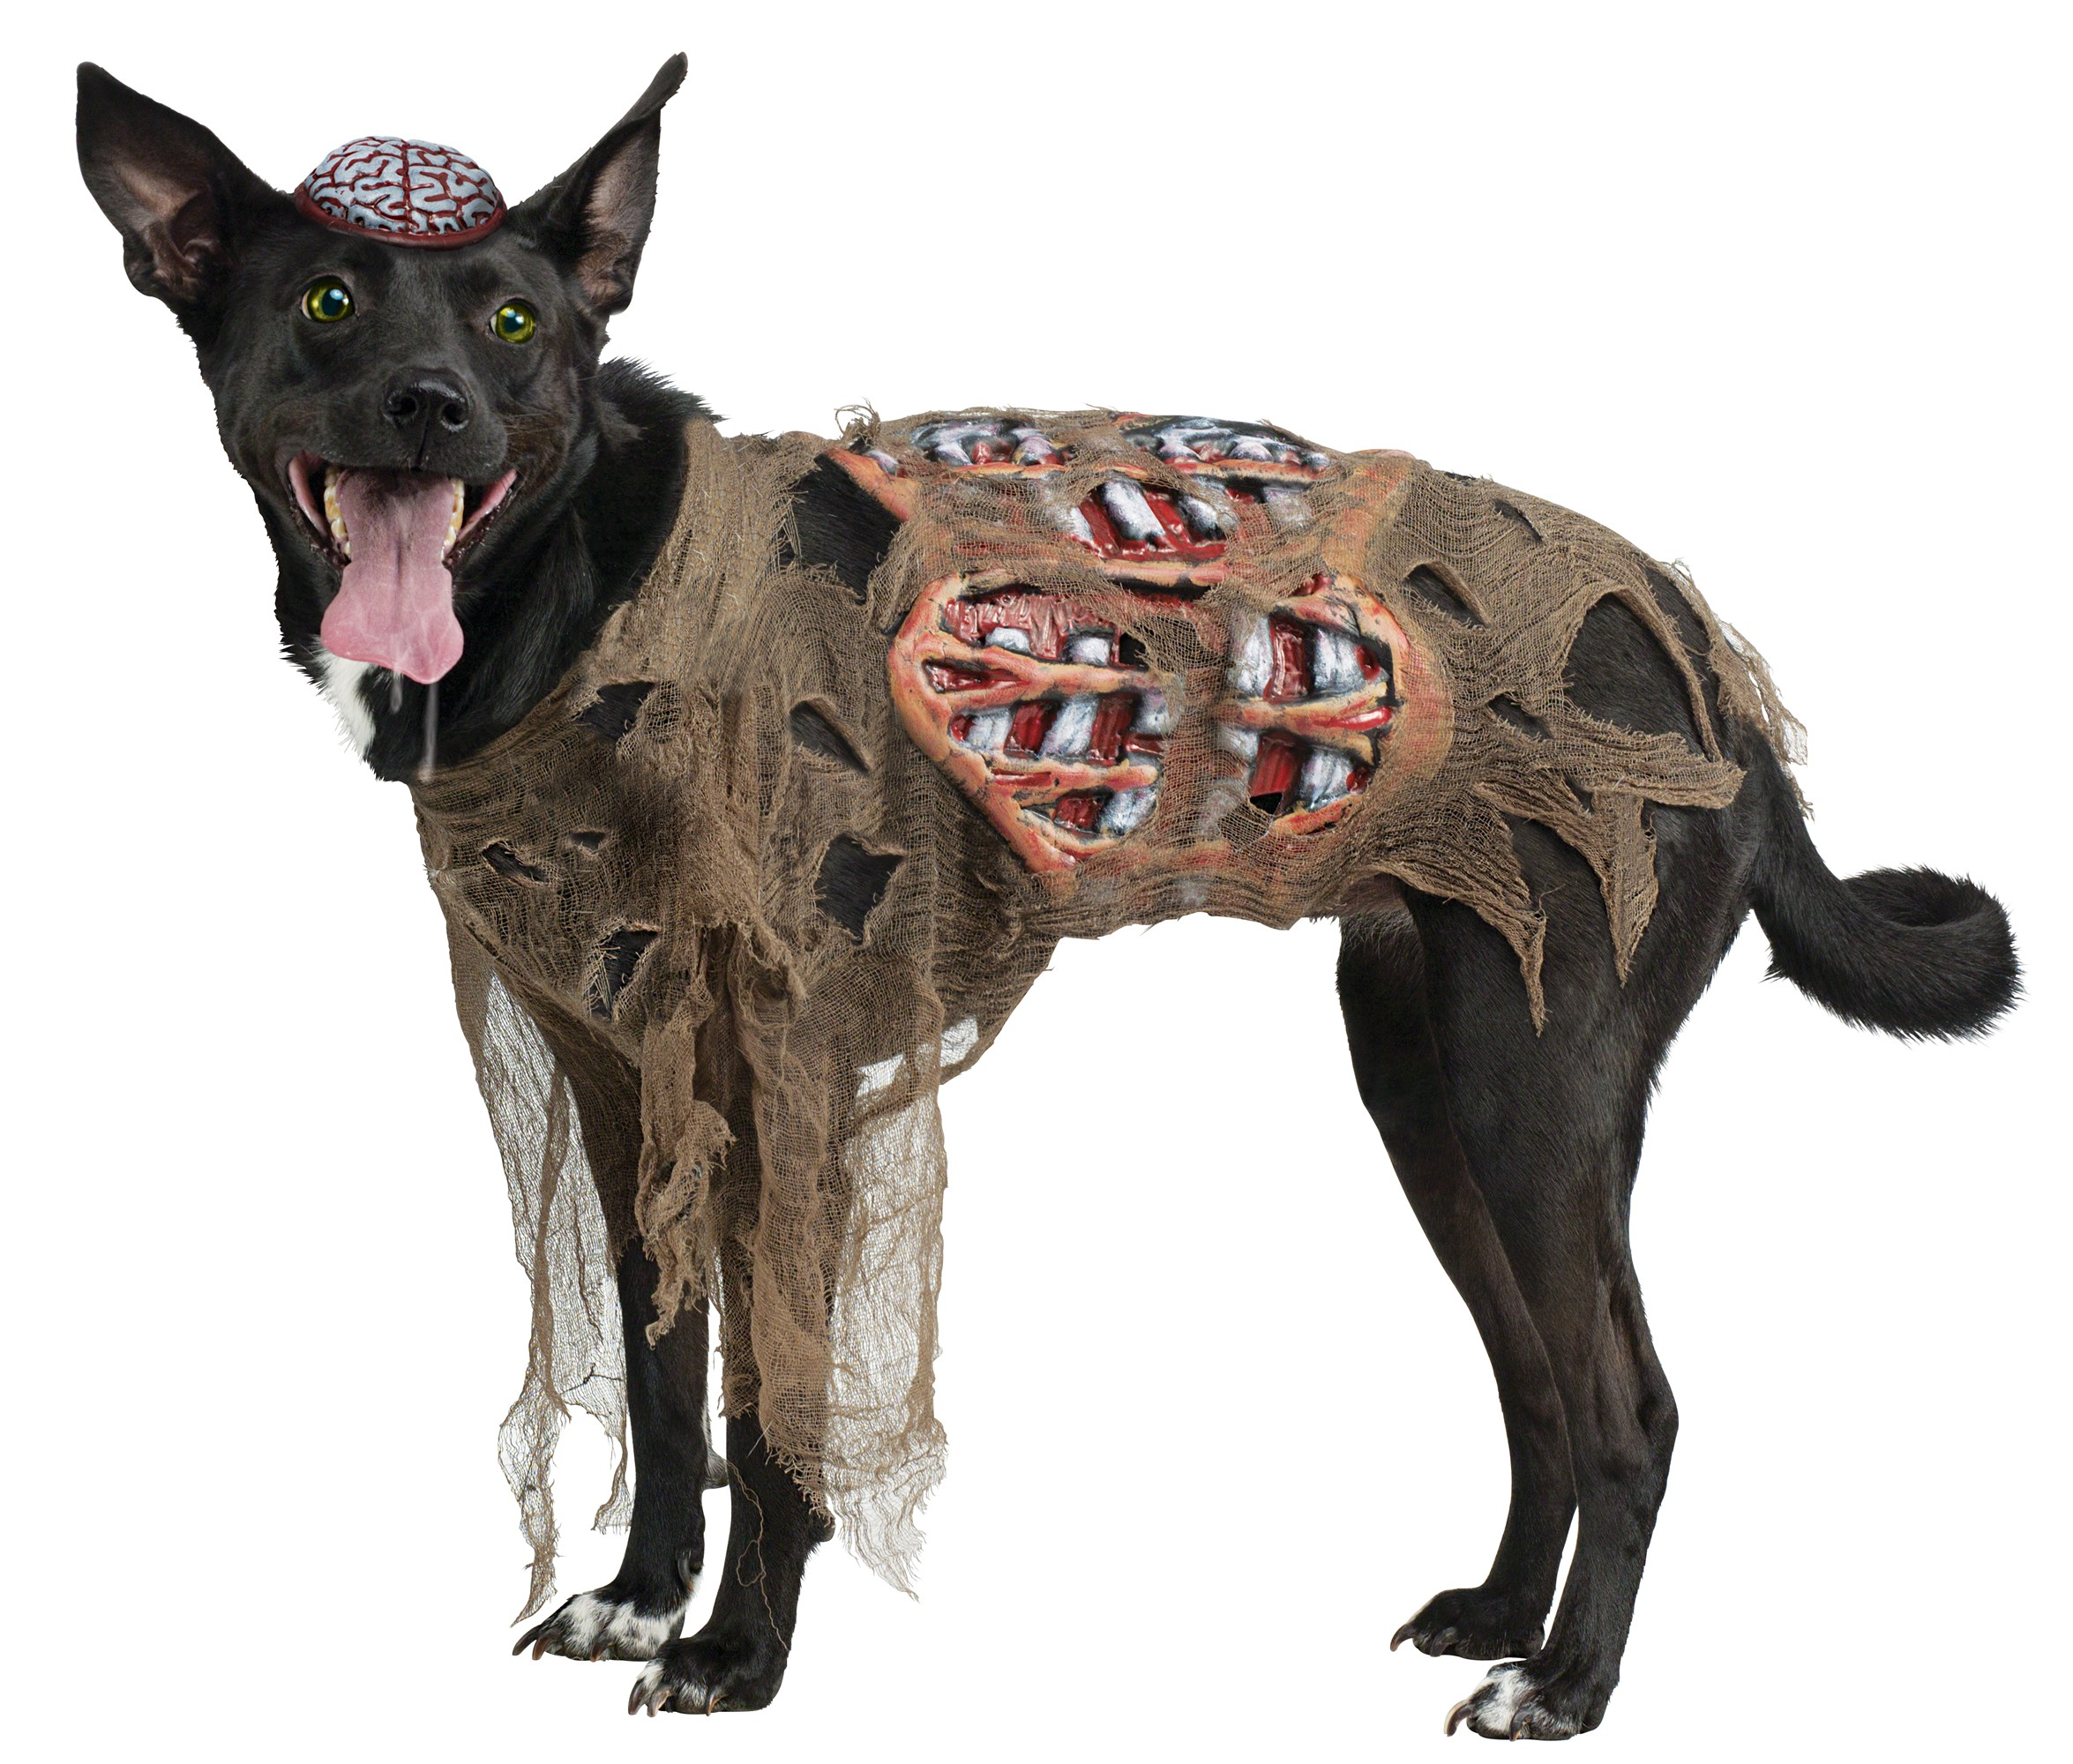 zombie gory bloody pet halloween costume dog clothes clothing